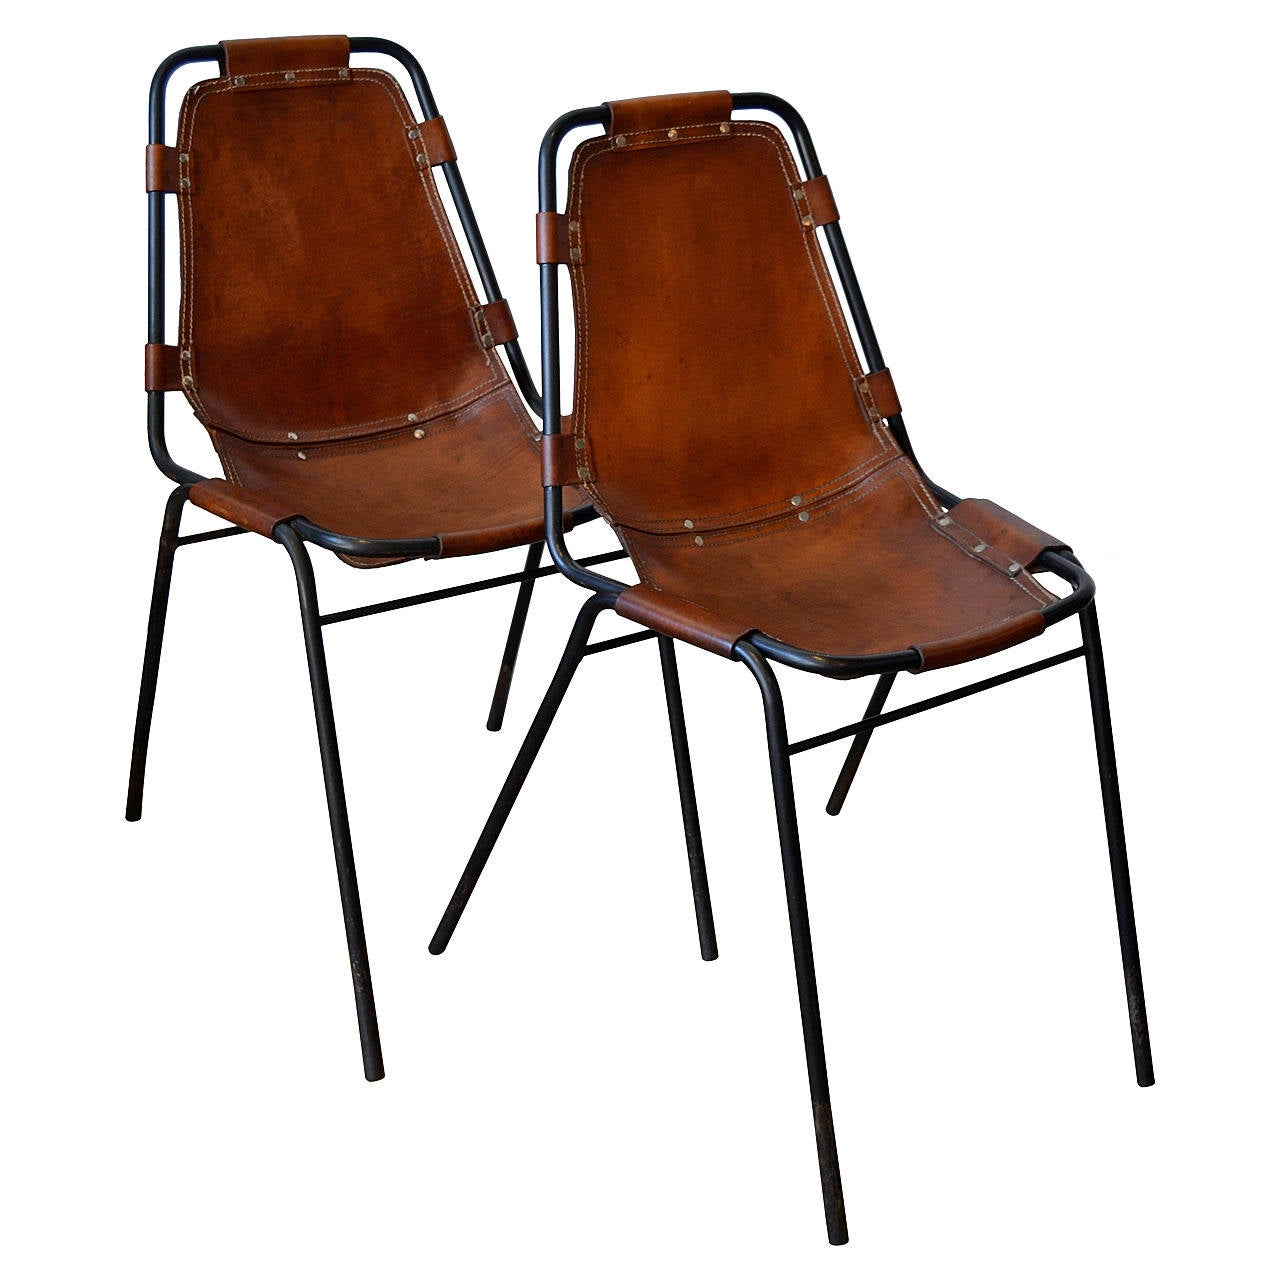 Metal And Leather Chair Charlotte Perriand Quotles Arcs Quot Metal And Leather Side